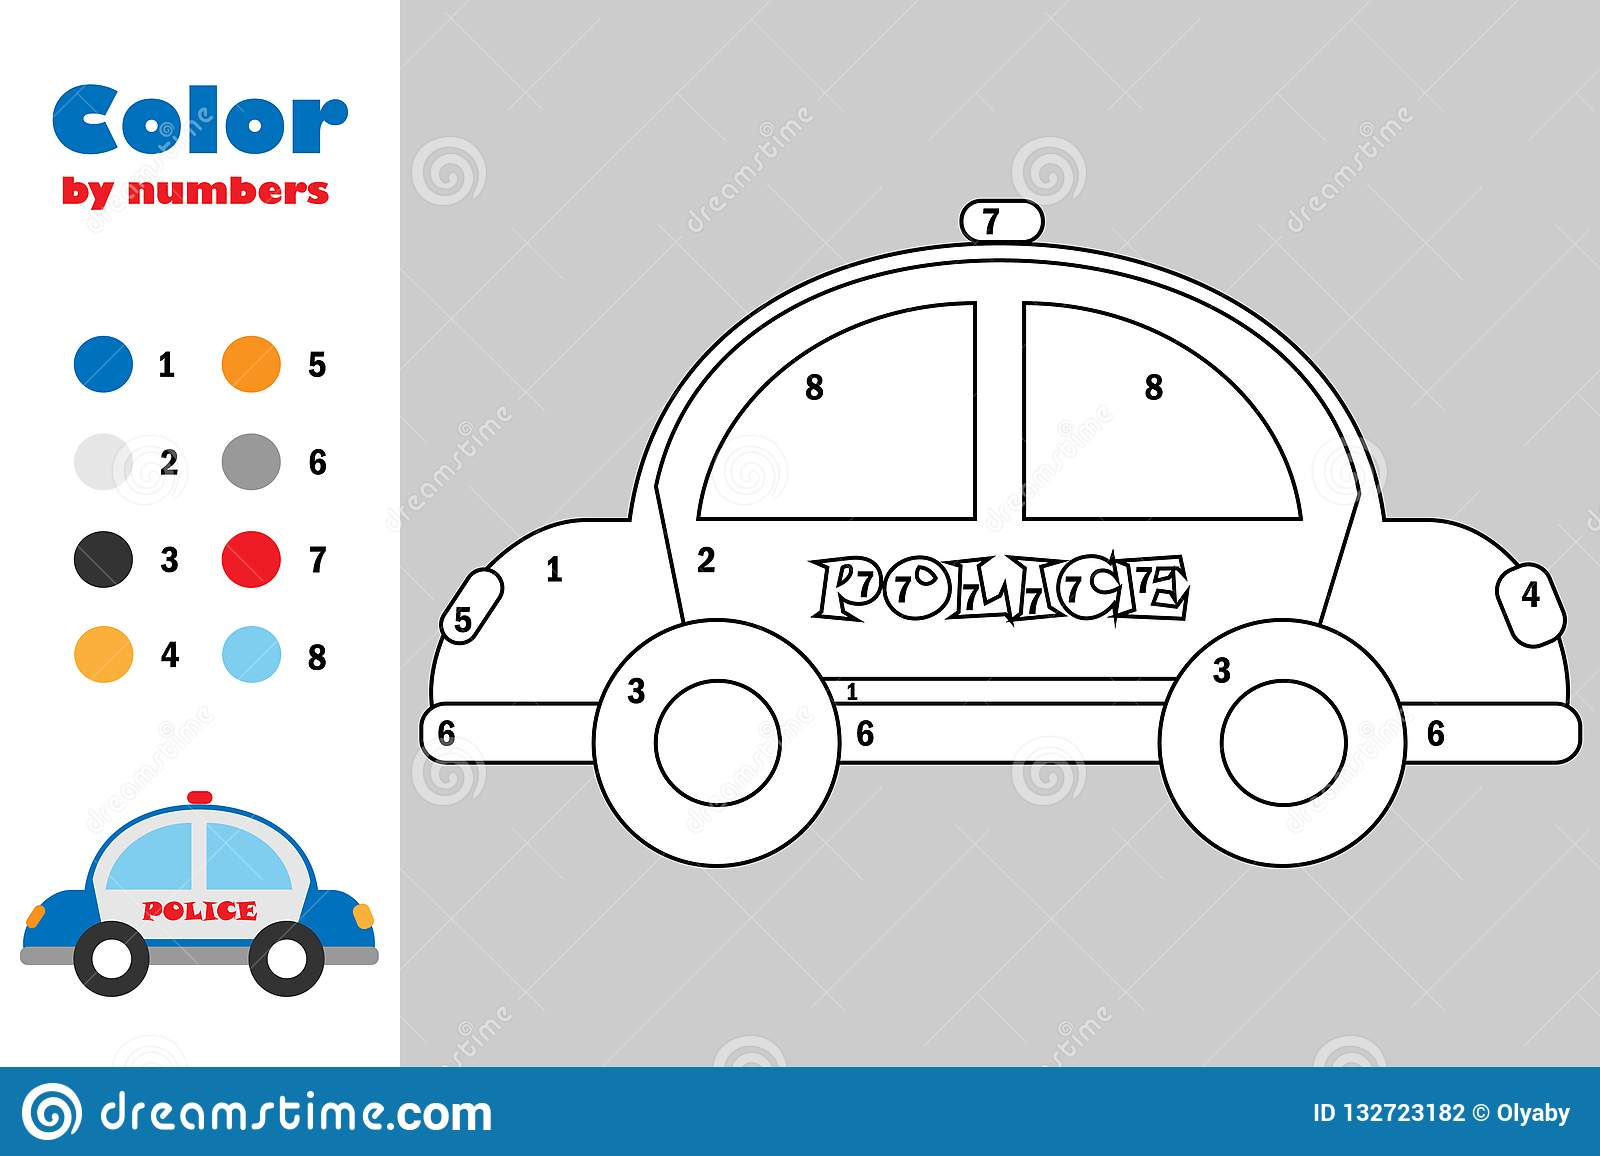 Police Car In Cartoon Style, Color By Number, Education Paper Game ...